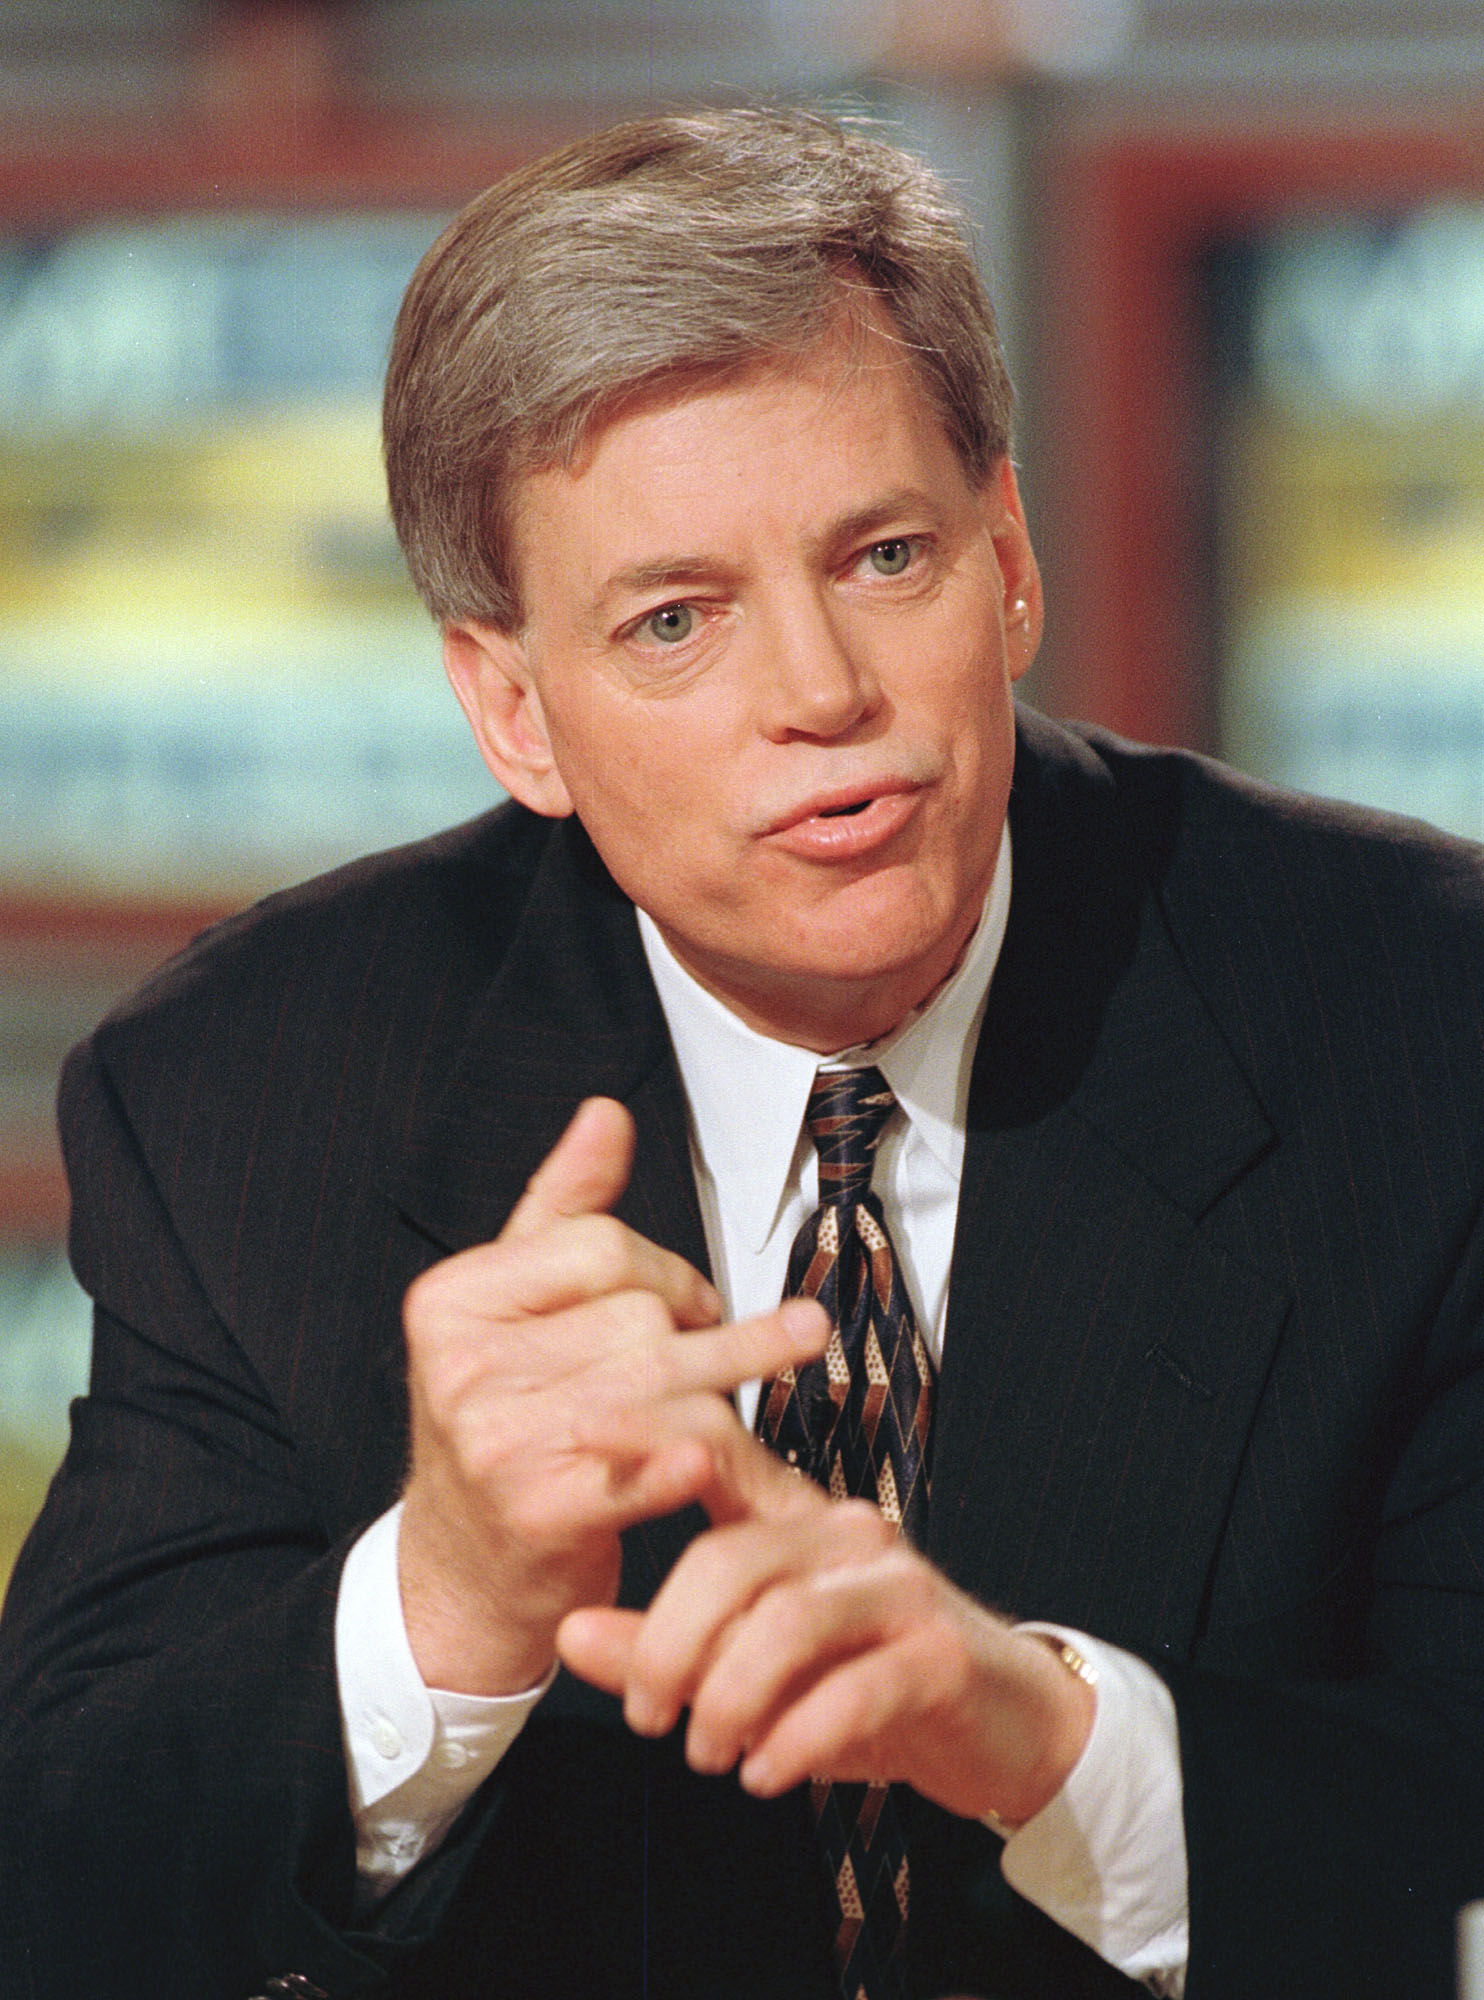 Former Klansman and congressional candidate David Duke discusses his bid for the seat opened by Rep. Bob Livingston during NBC's ''Meet the Press'' on March 28, 1999 in Washington.